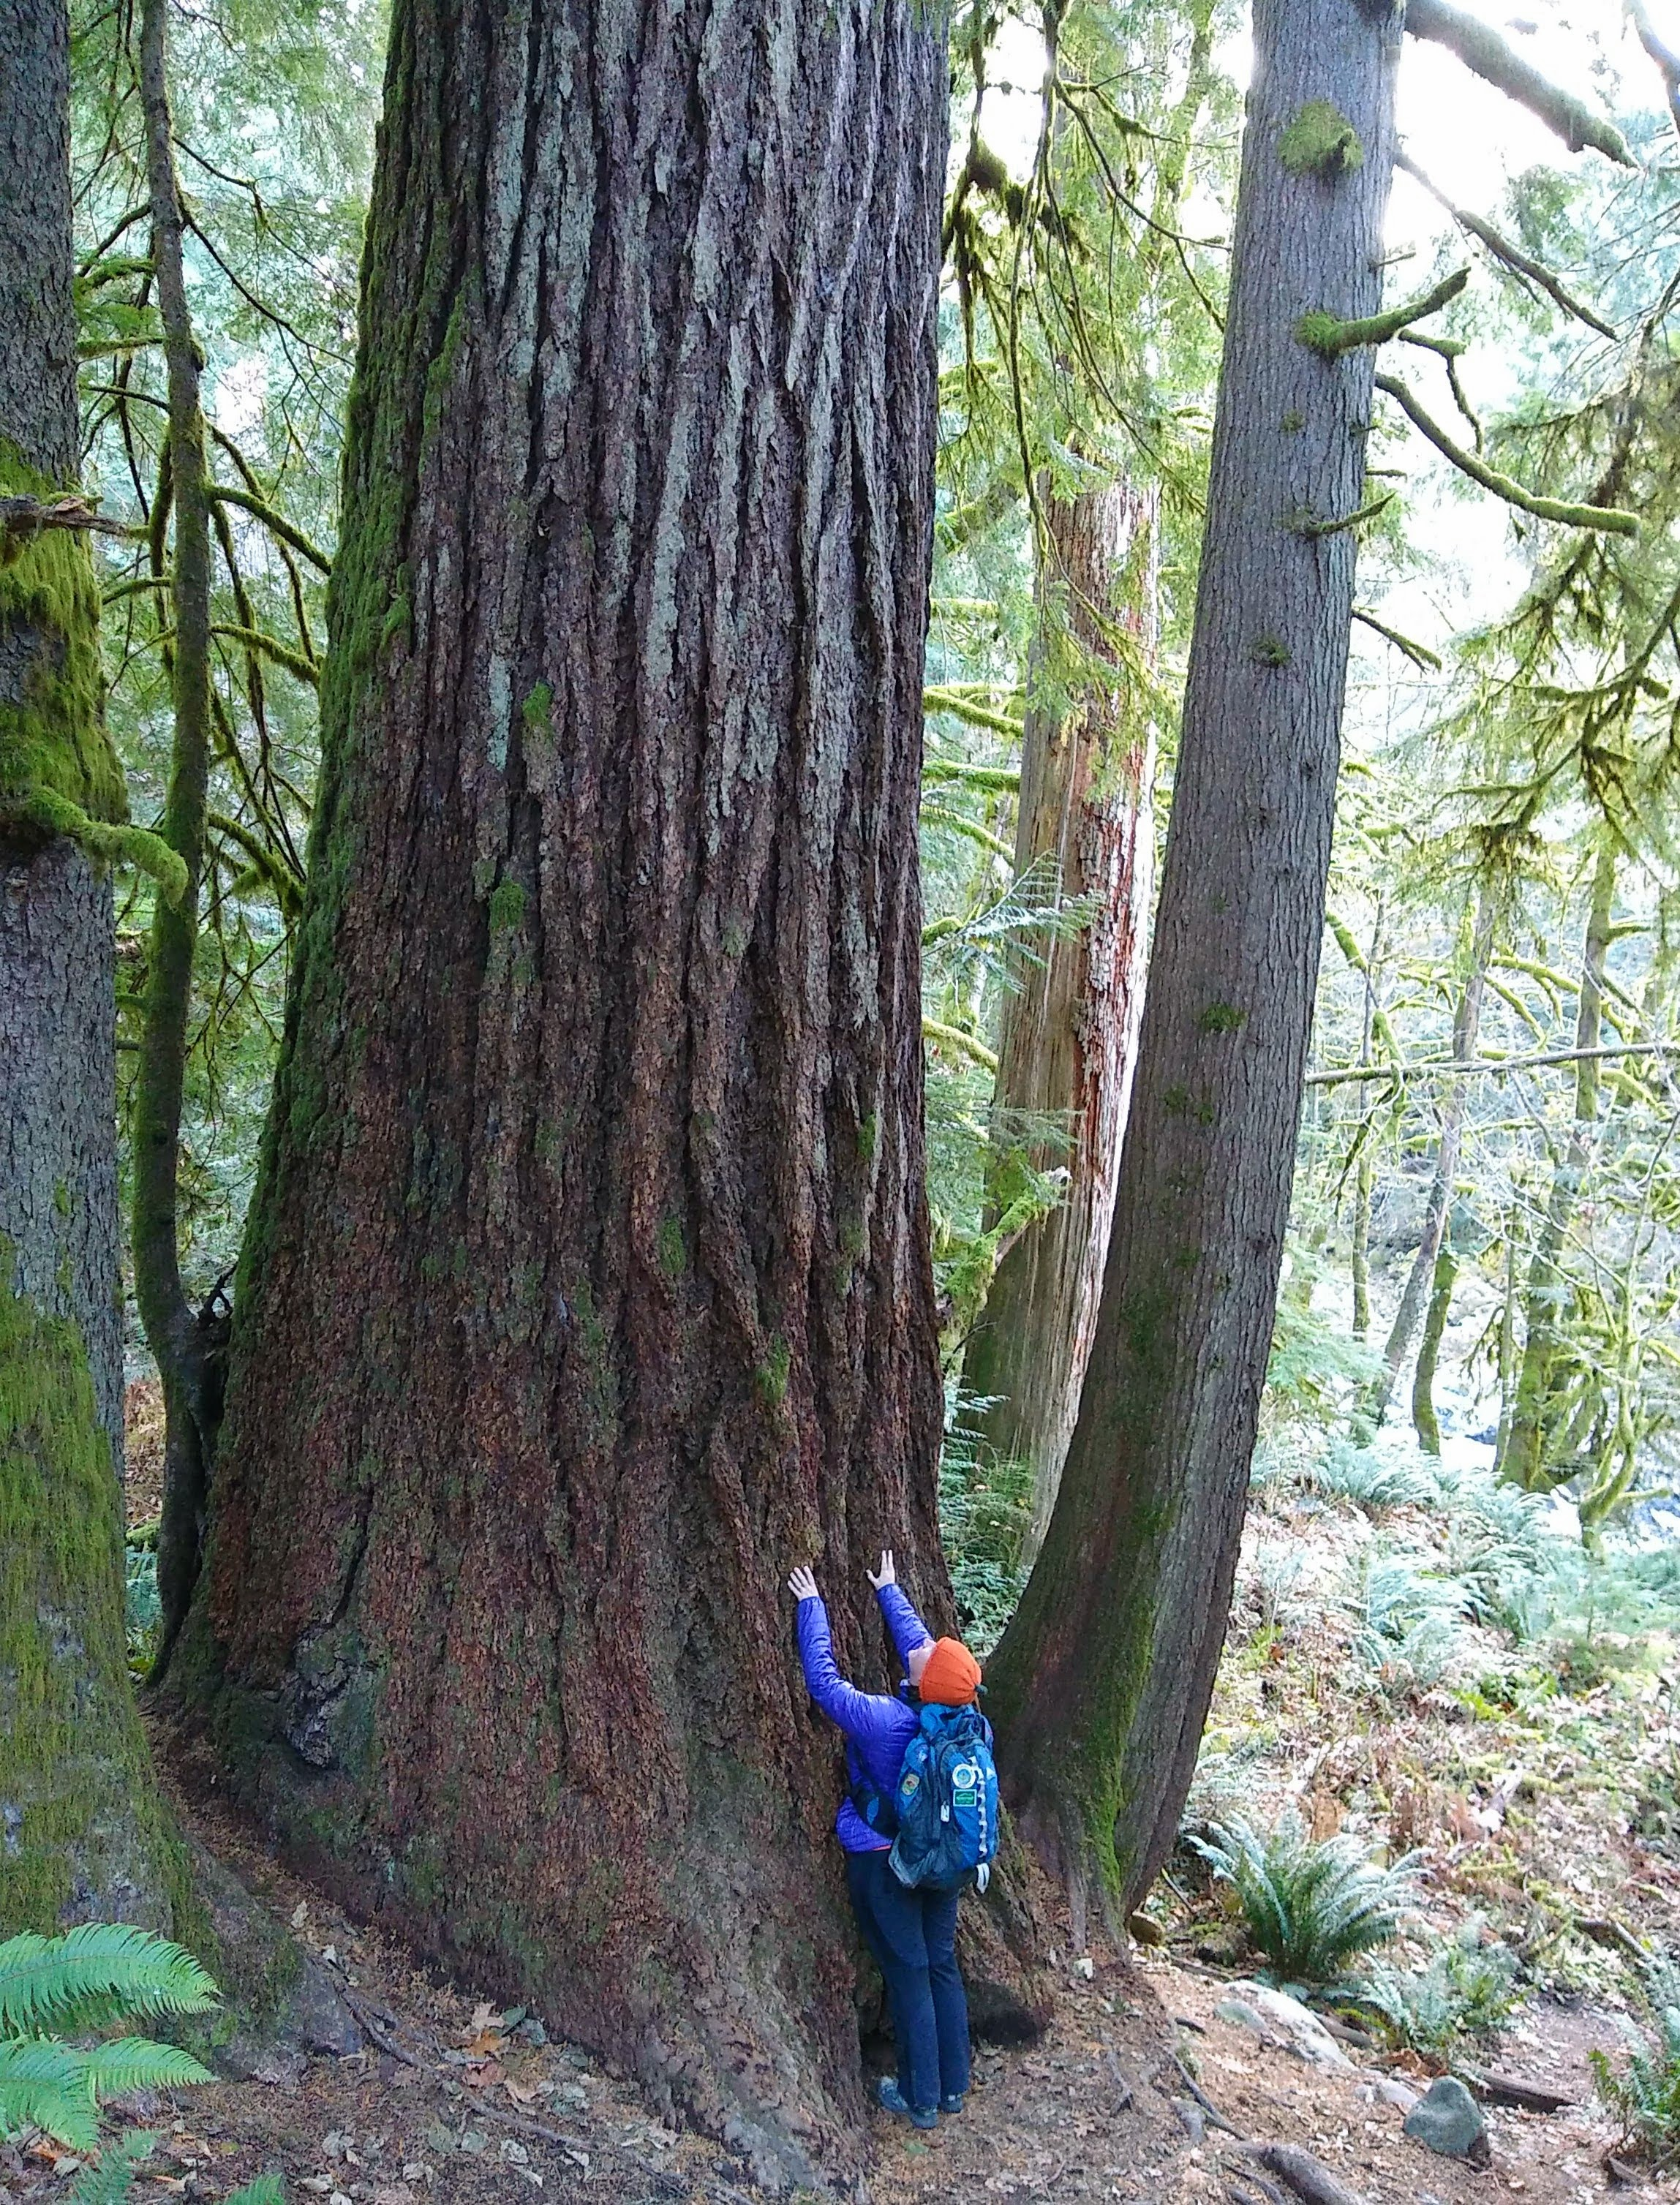 A hiker looks tiny next to an old growth Douglas Fir tree which we can only see the bottom of along a trail near Seattle